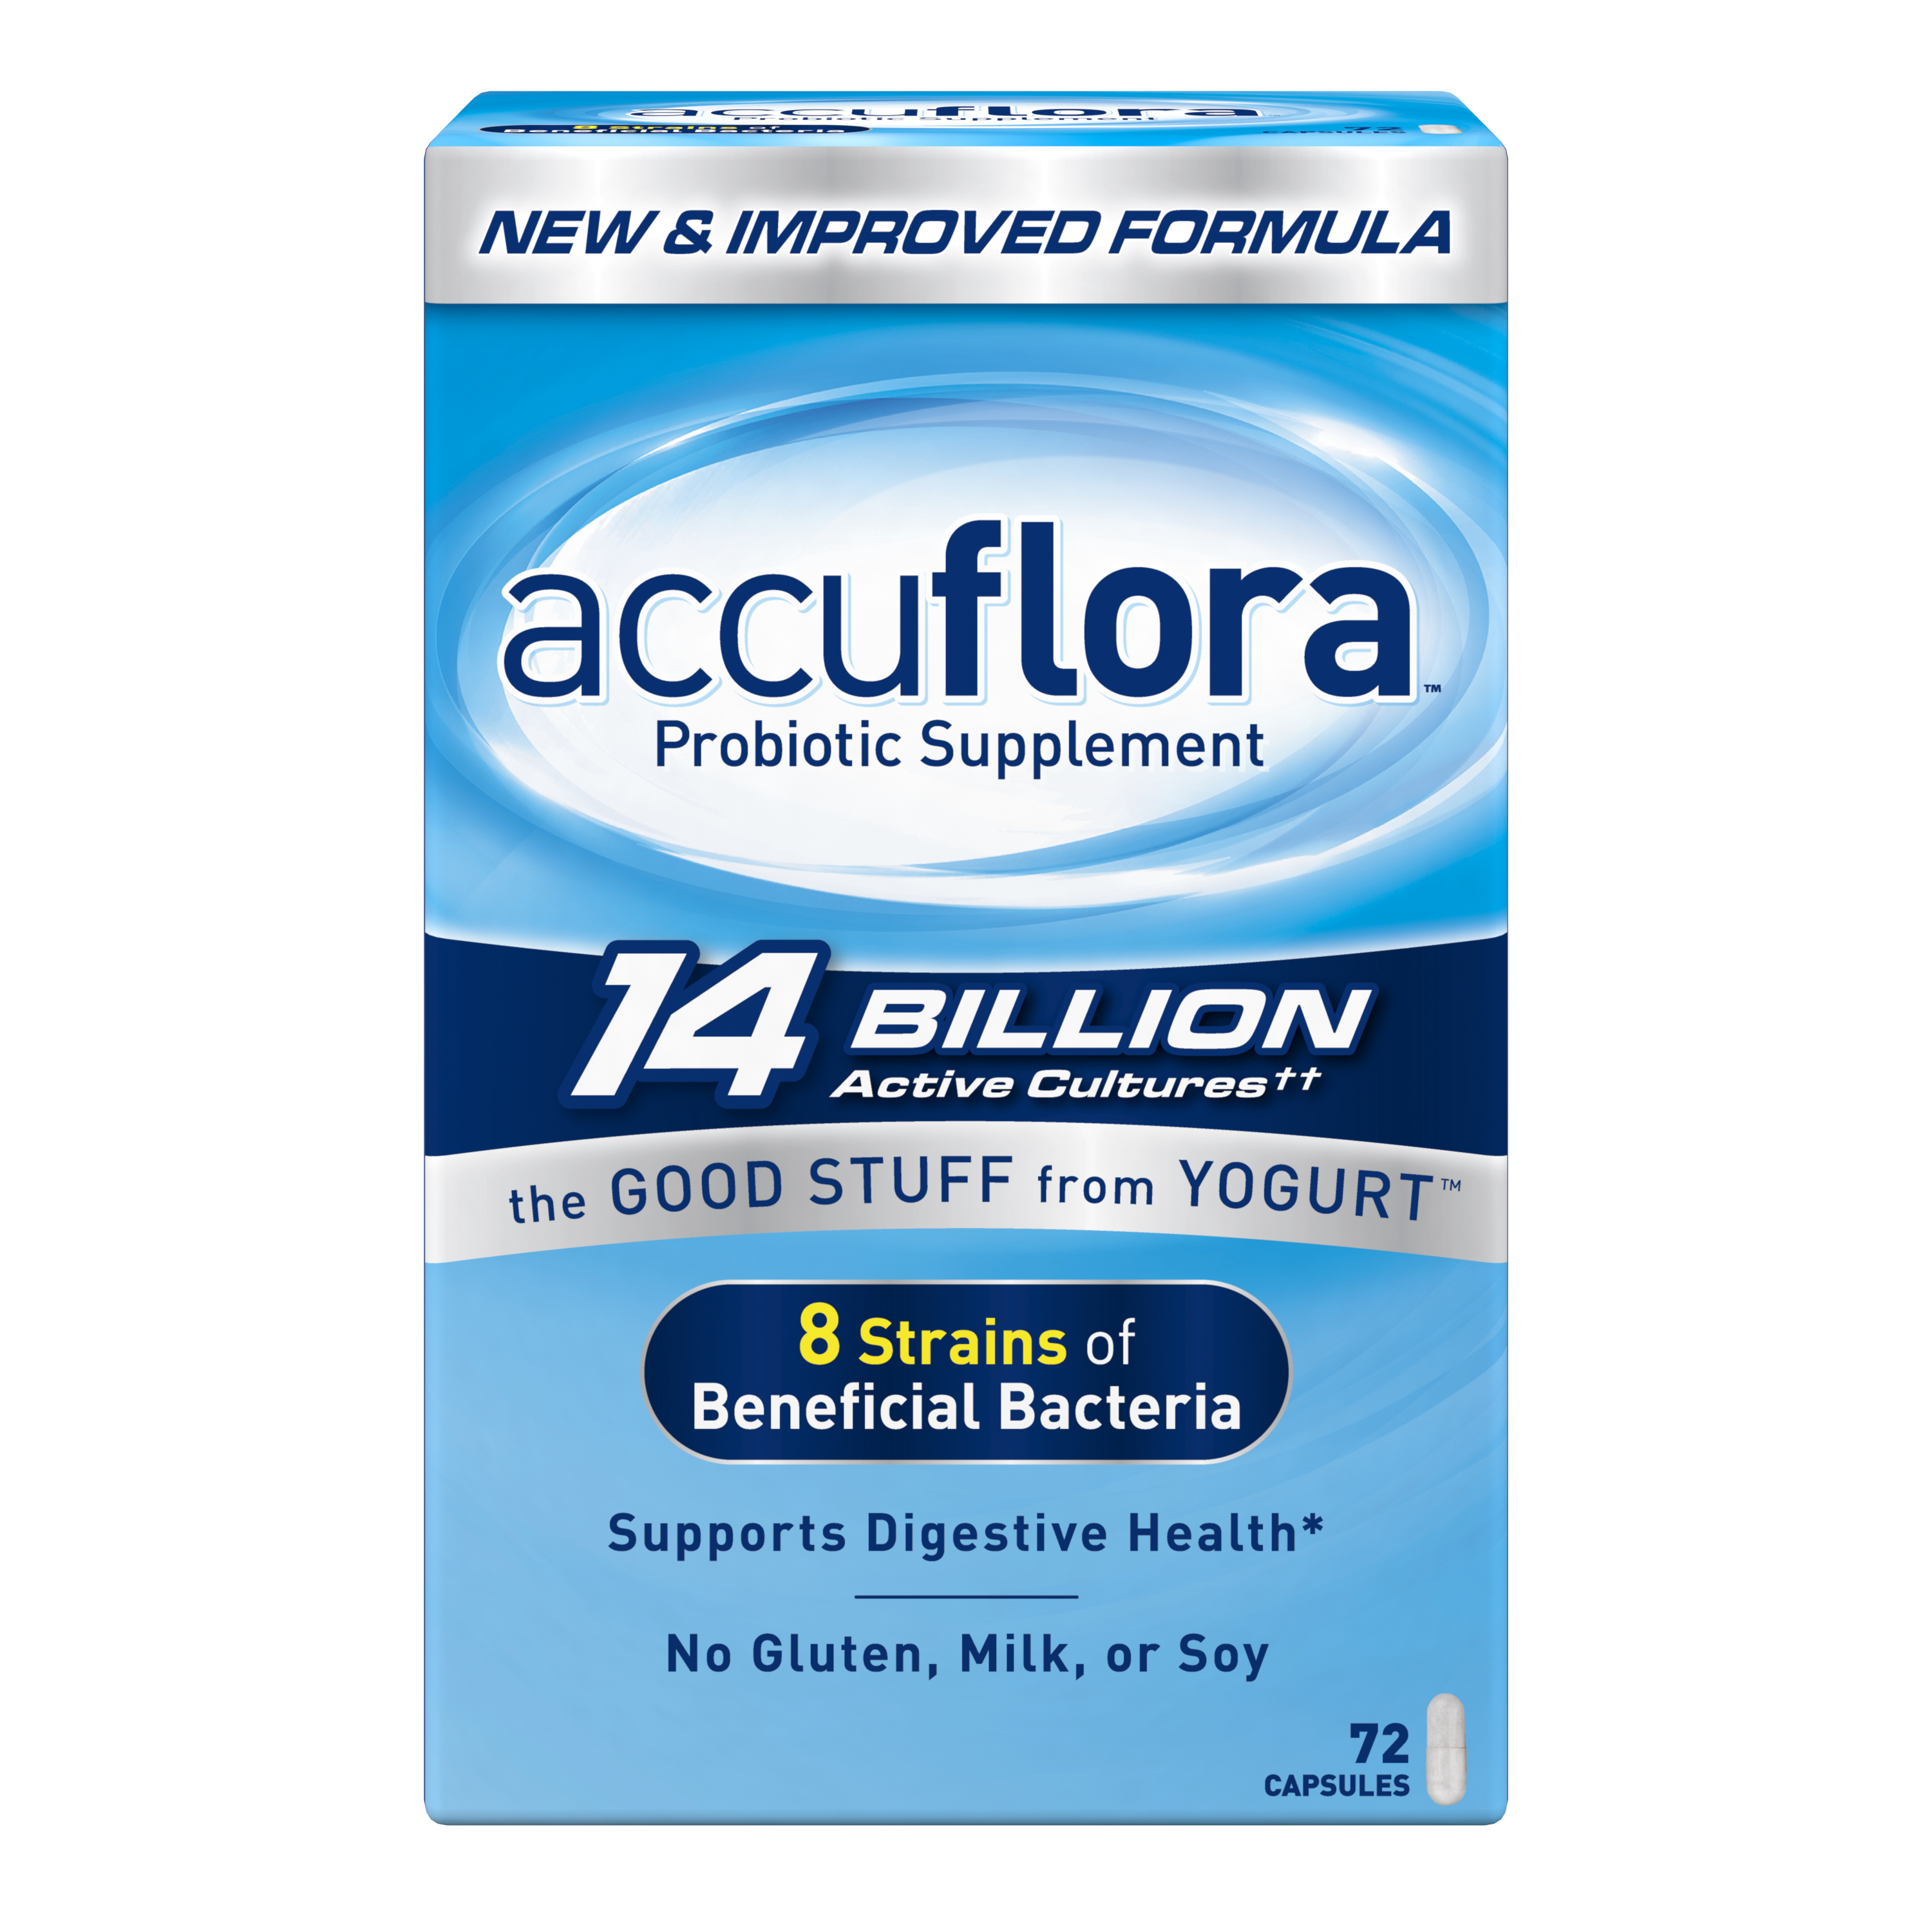 8231fc6c0a6 accuflora™ Probiotic Supplement